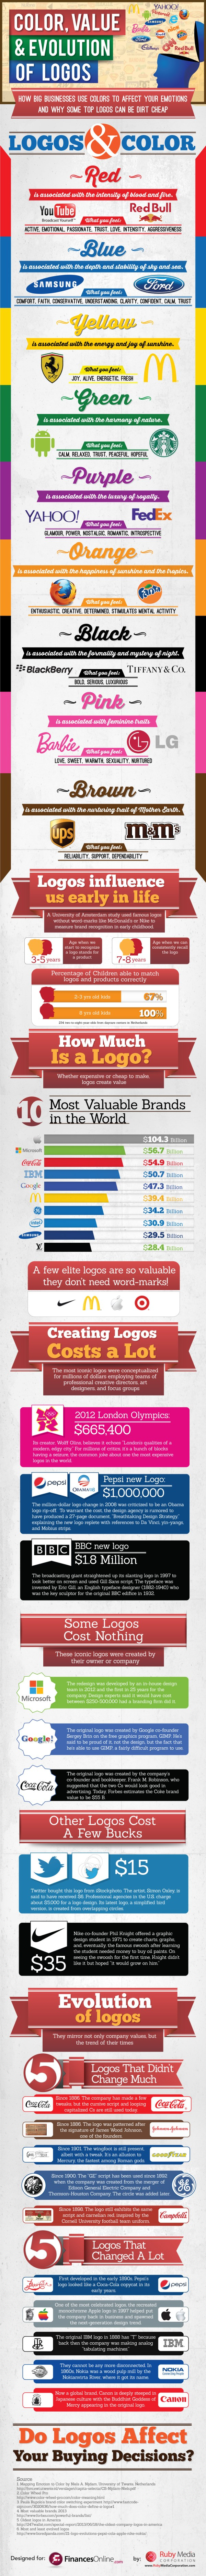 Big Business Logos: How Companies Like Pepsi or Google Use The Power Of Logos